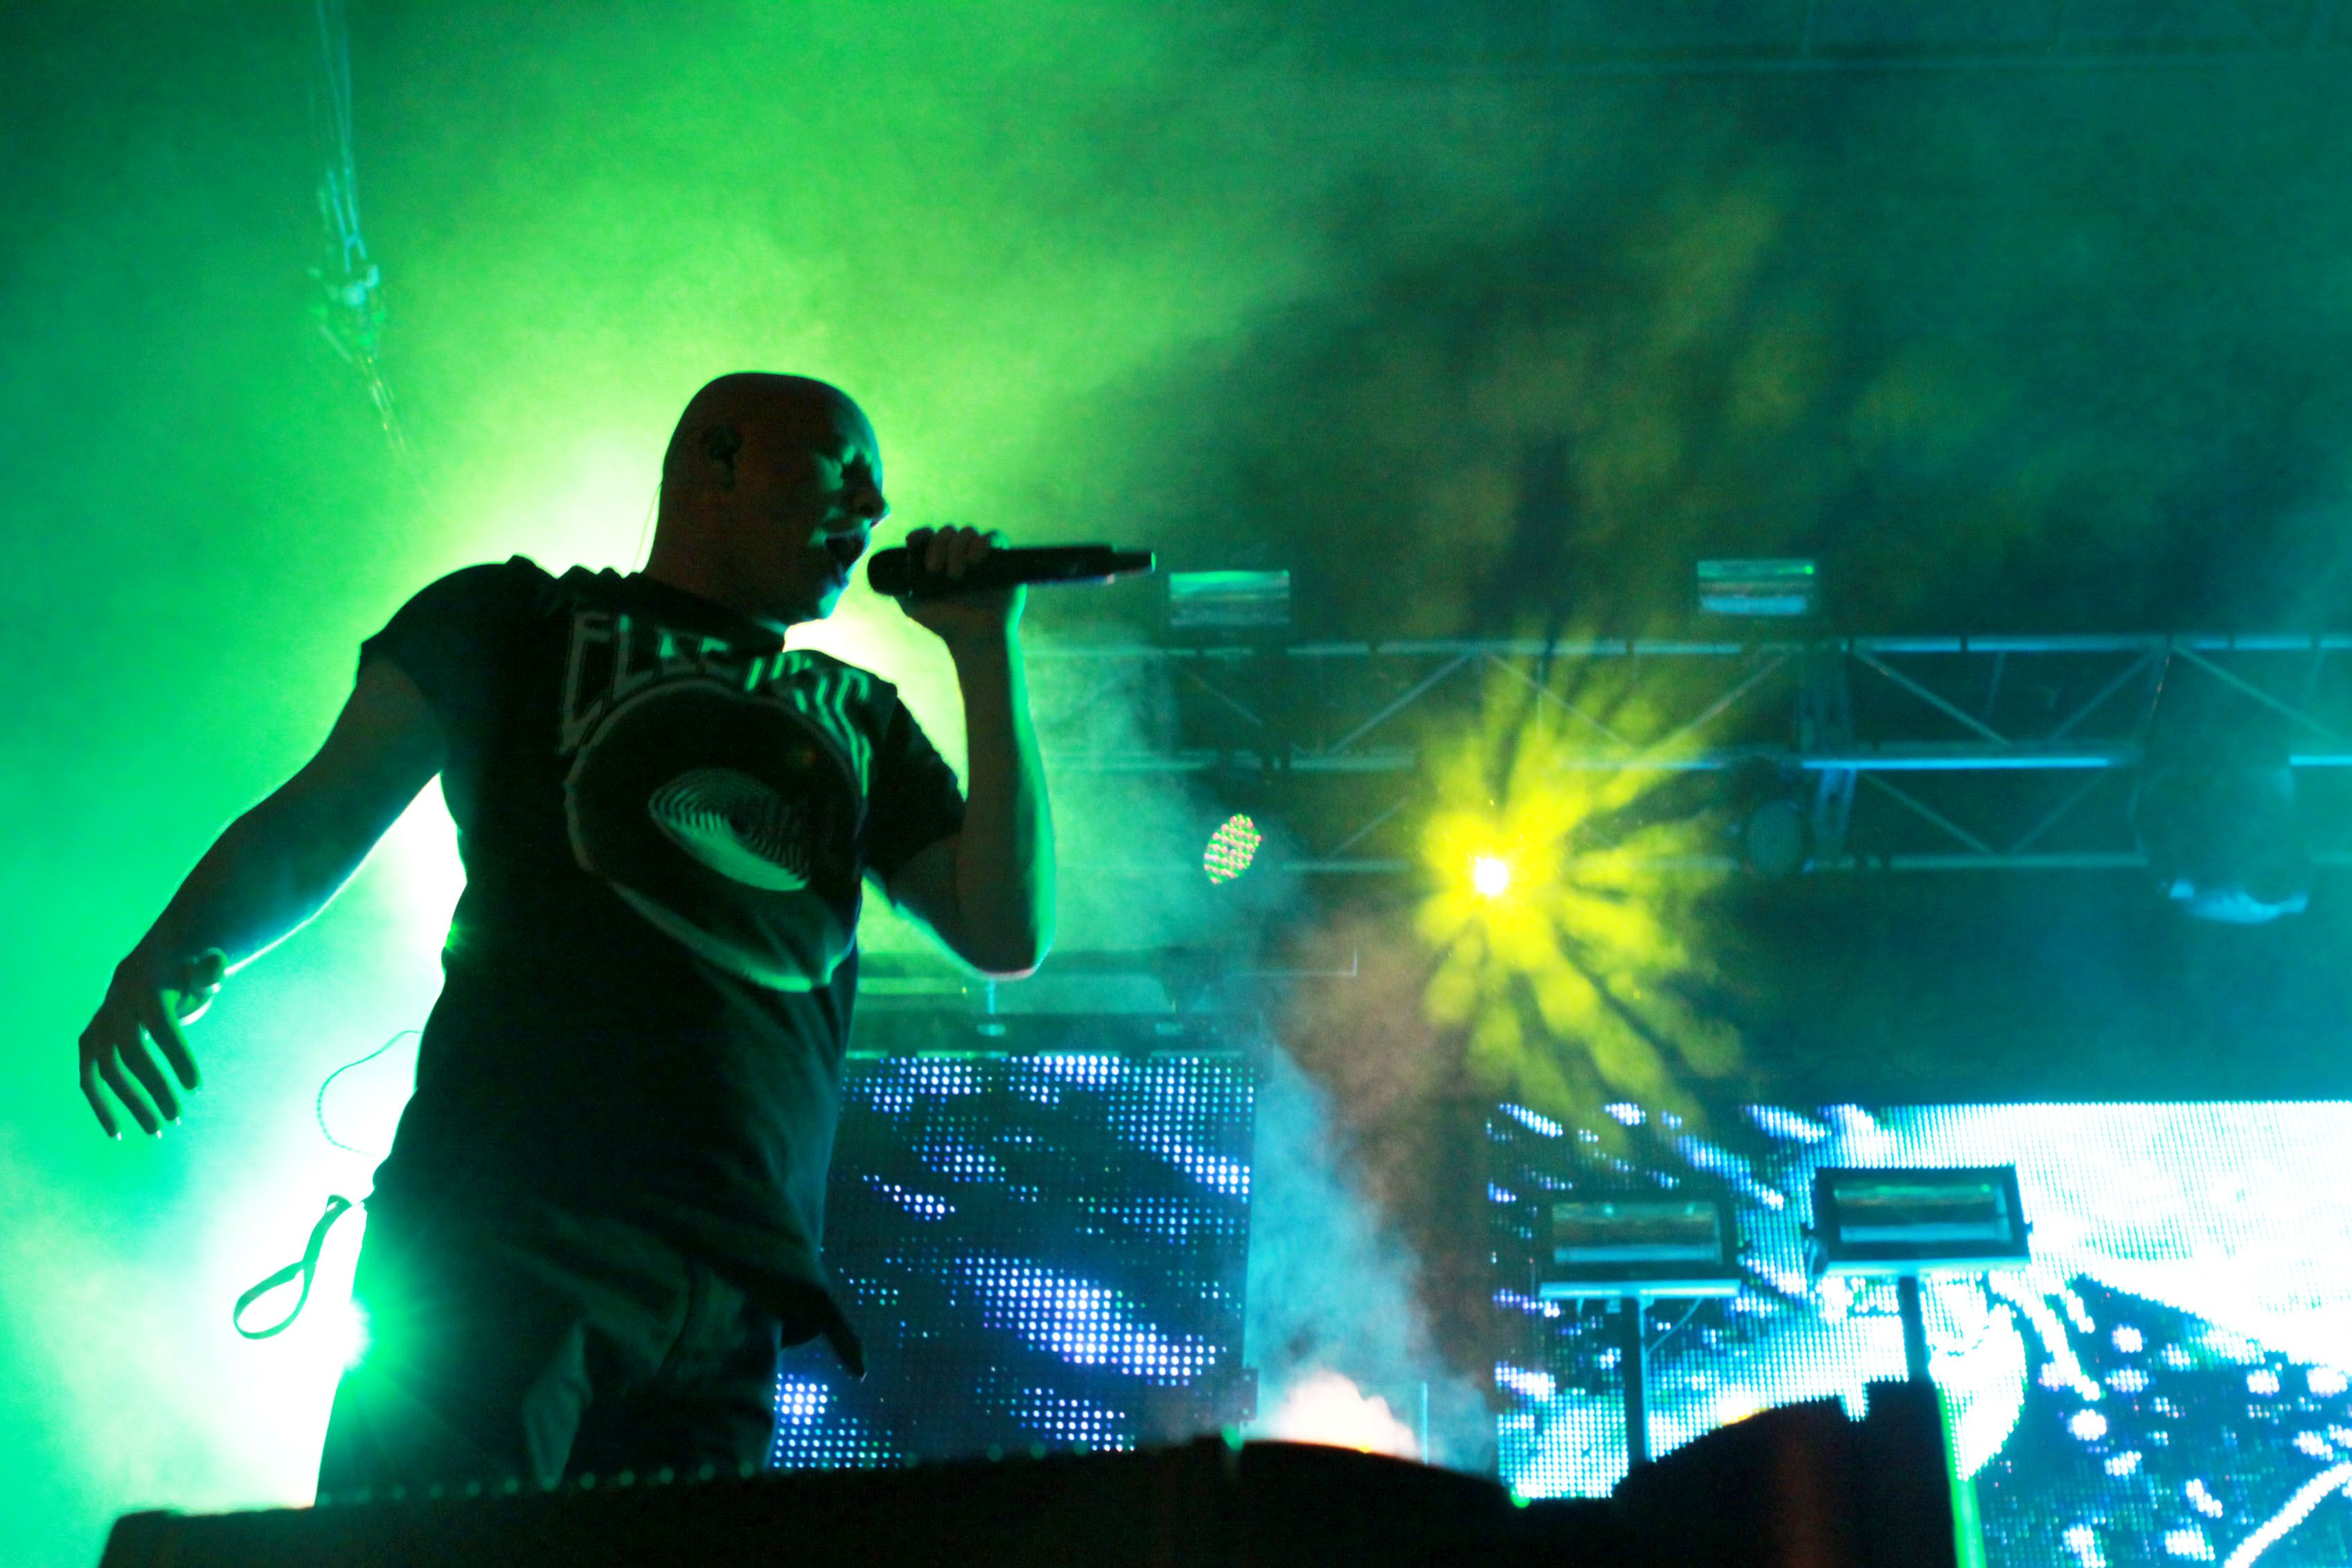 Infected Mushroom Latest Songs Good concert | infected mushroom | pinterest | infected mushroom